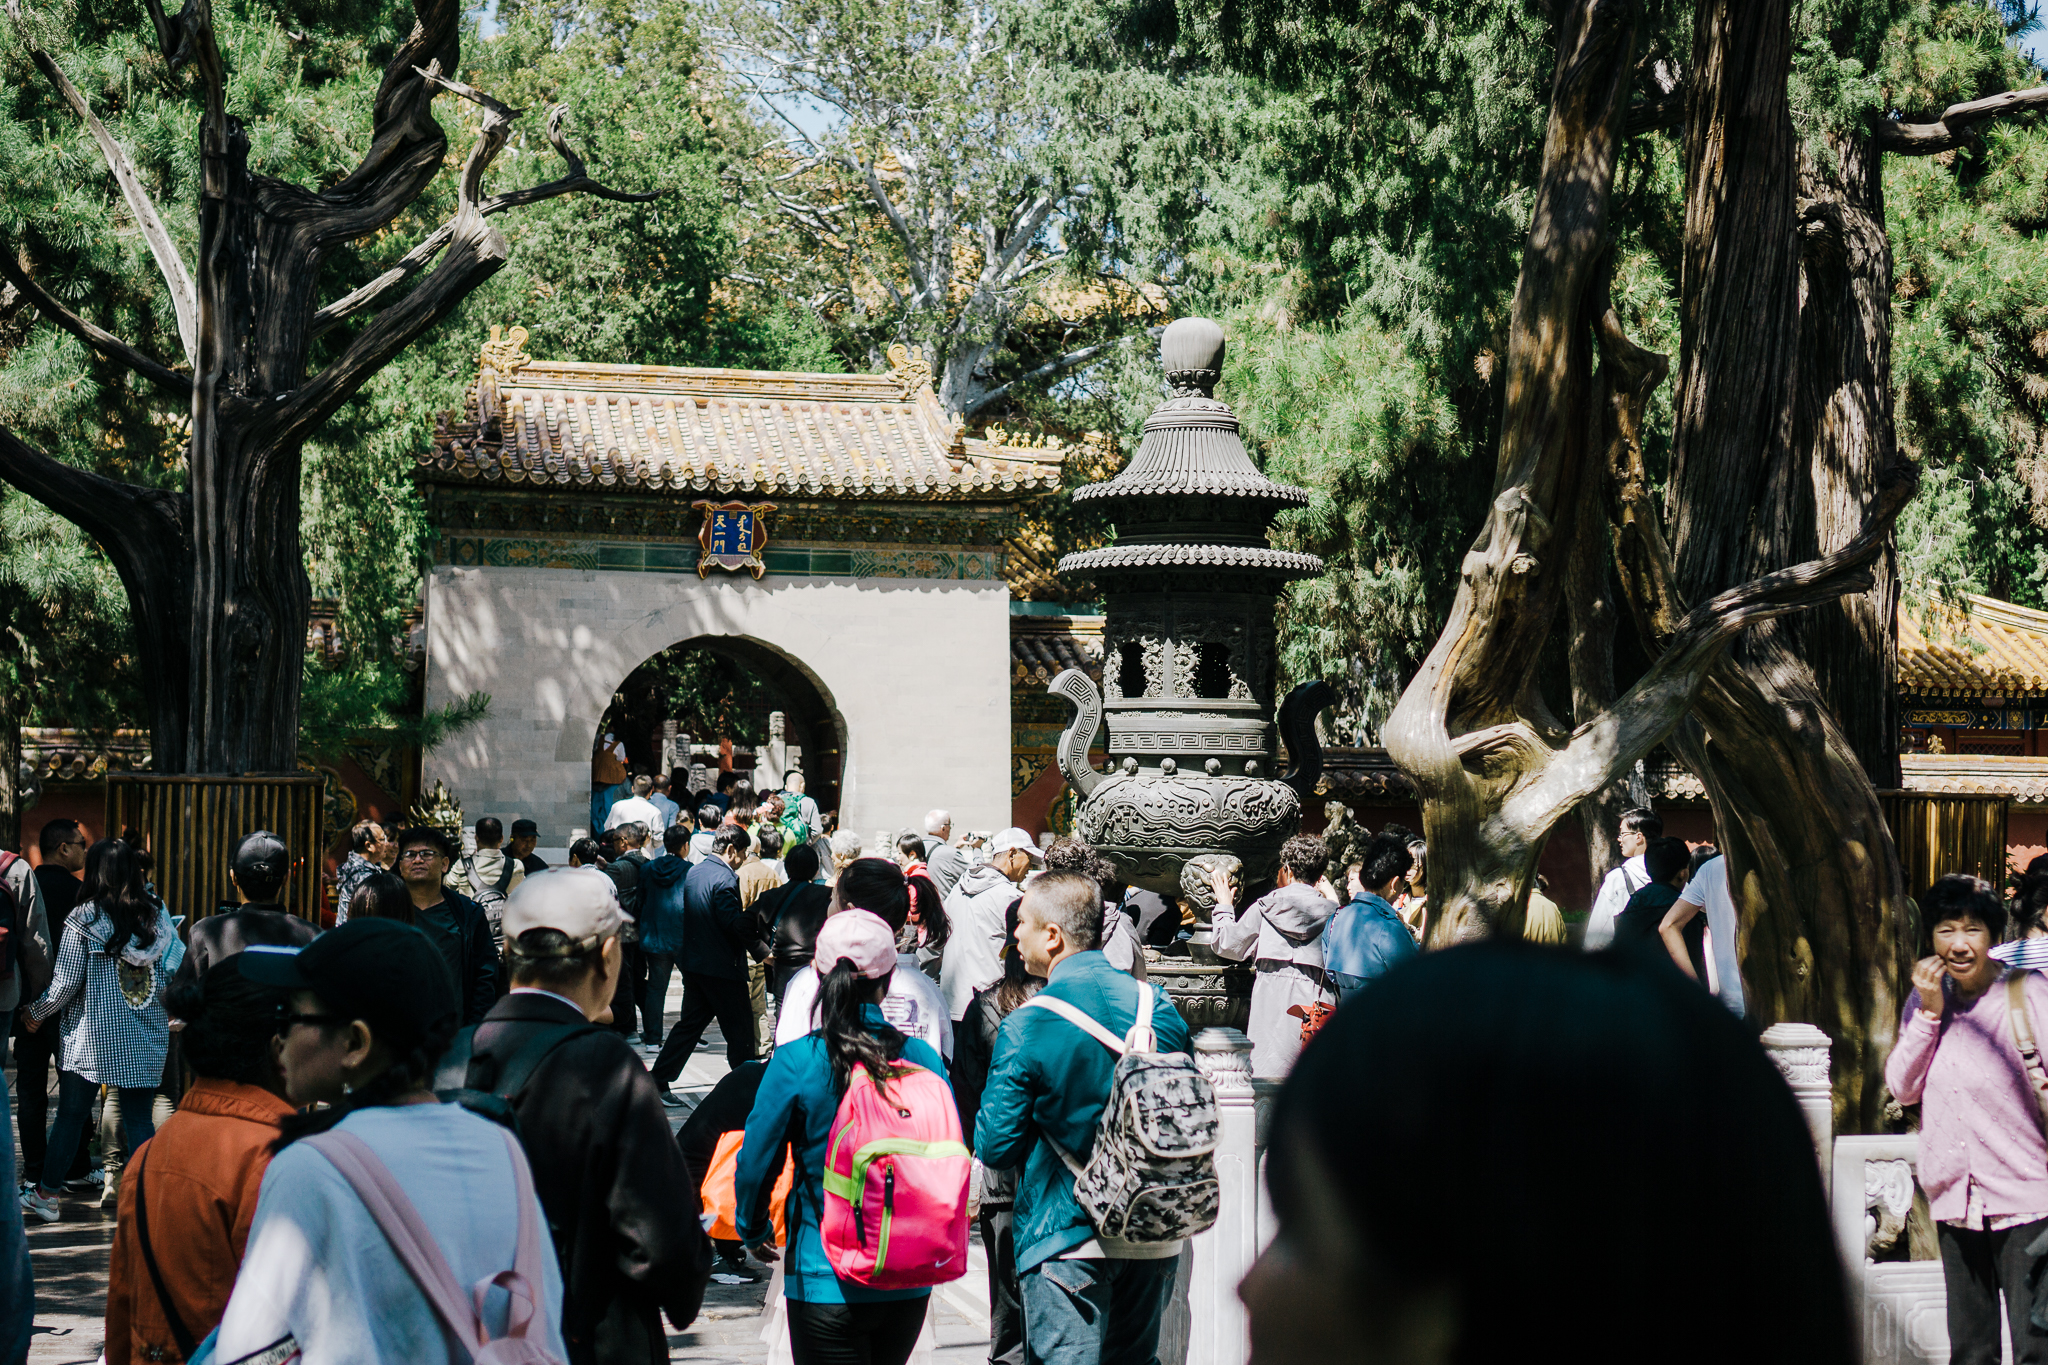 Mutianyu, Great Wall of China,  Beijing, Forbidden City, Emperors Summer Palace (51 of 51).jpg